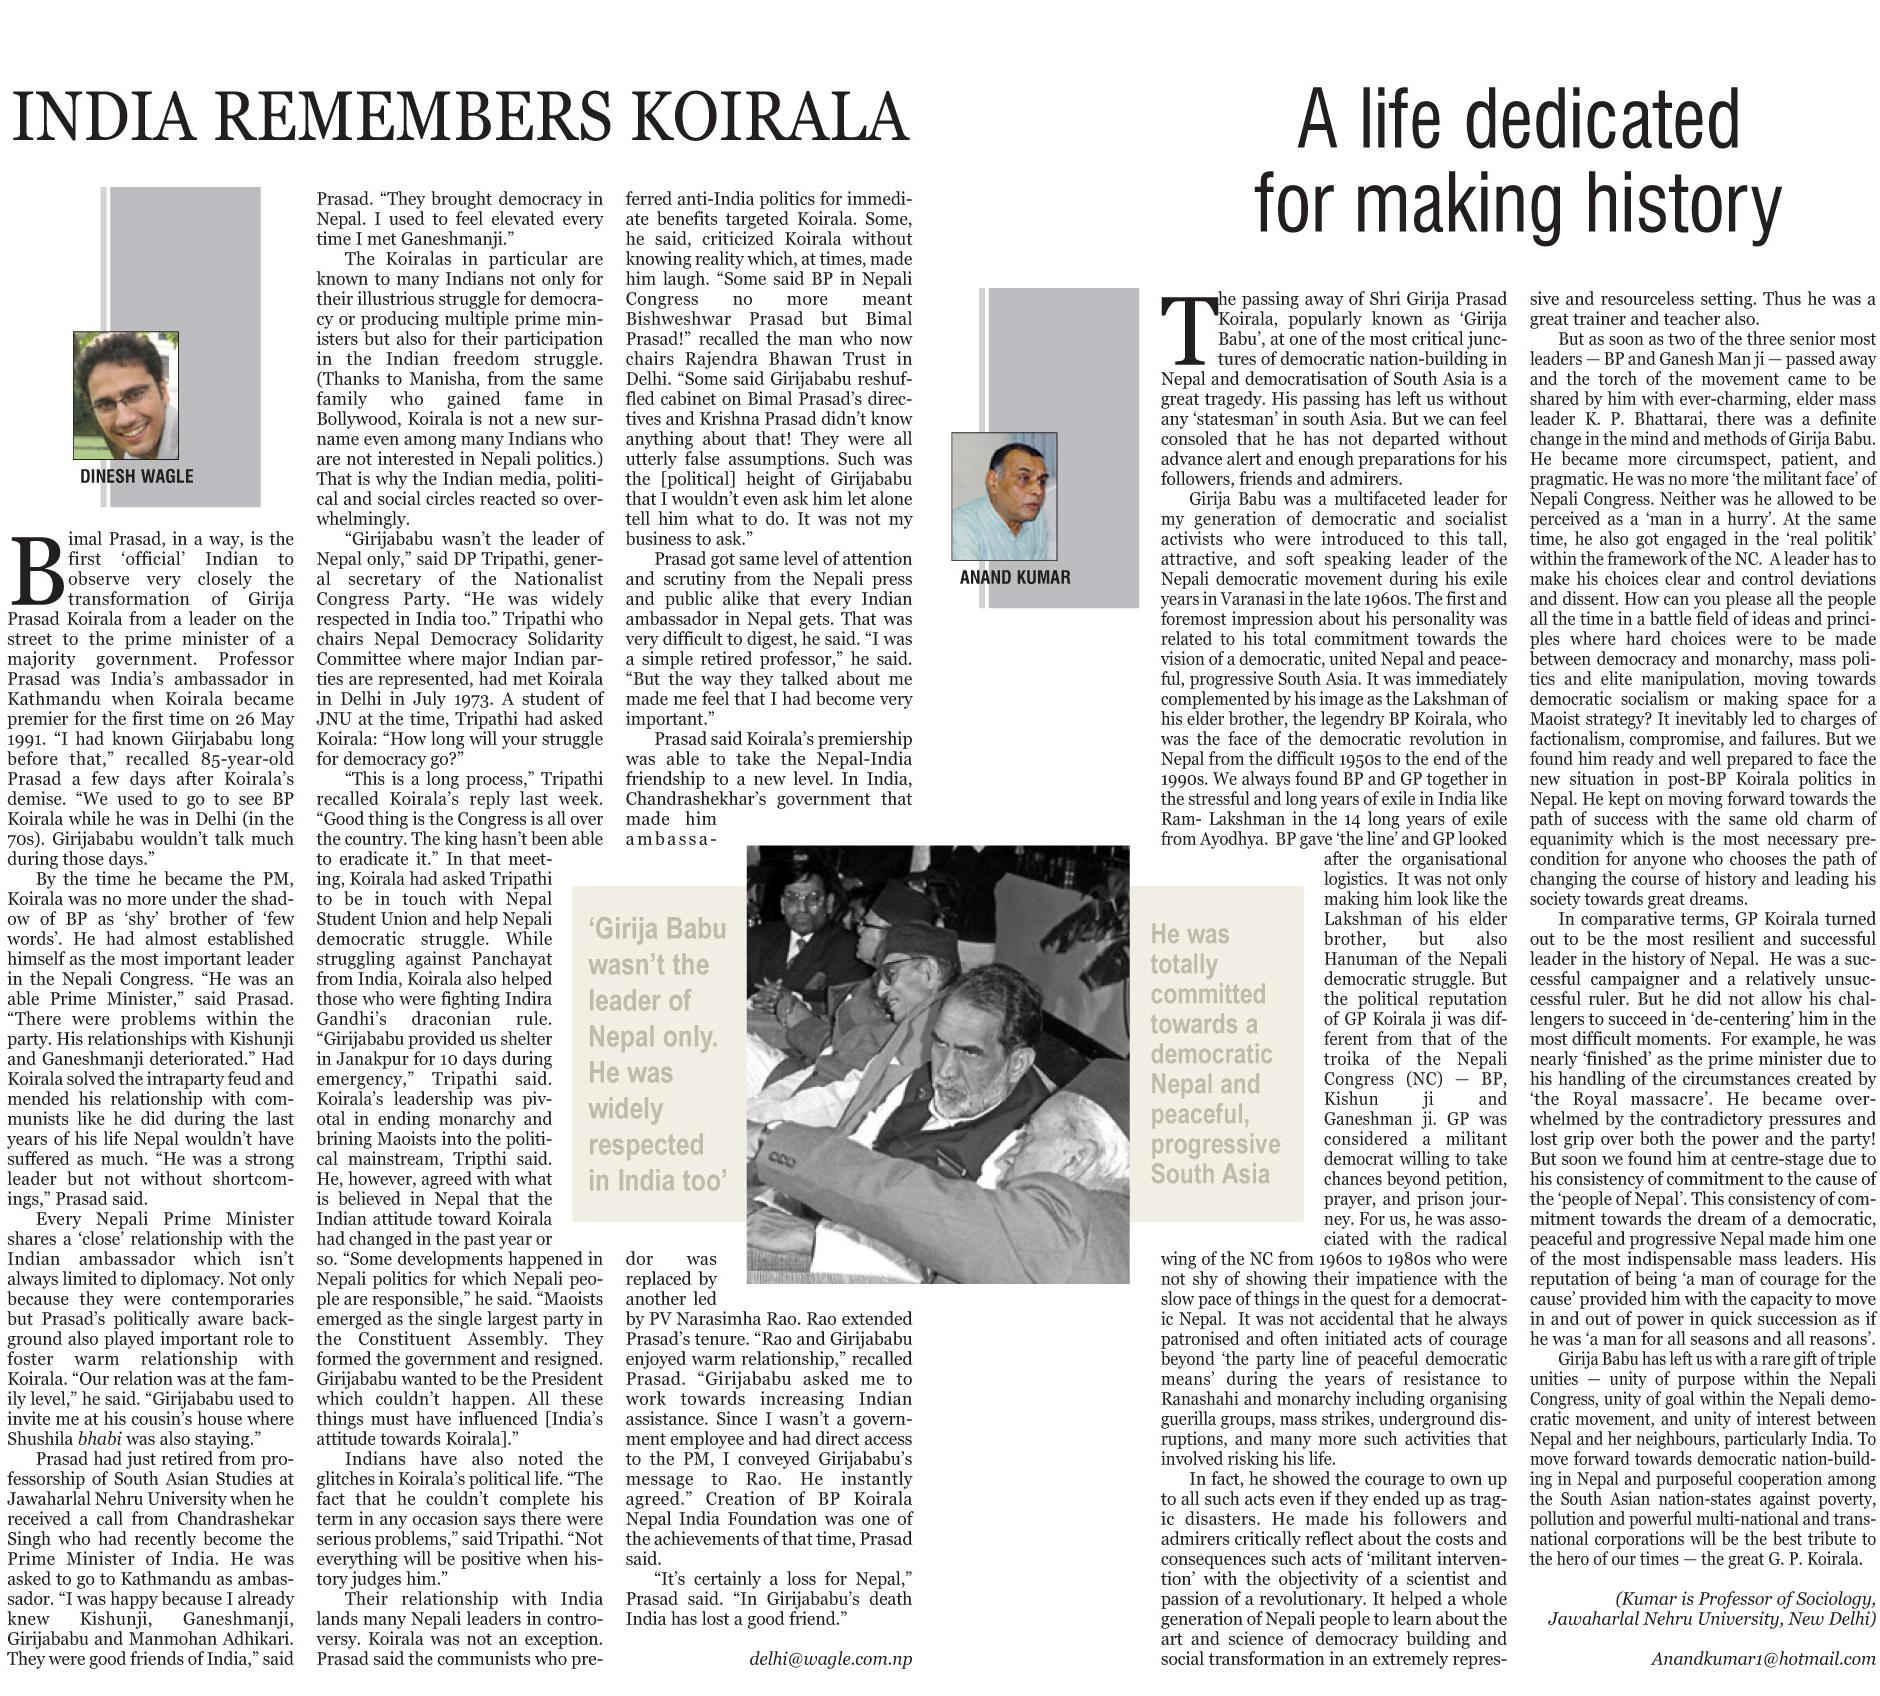 india remembers koirala kathmandu post special supplement